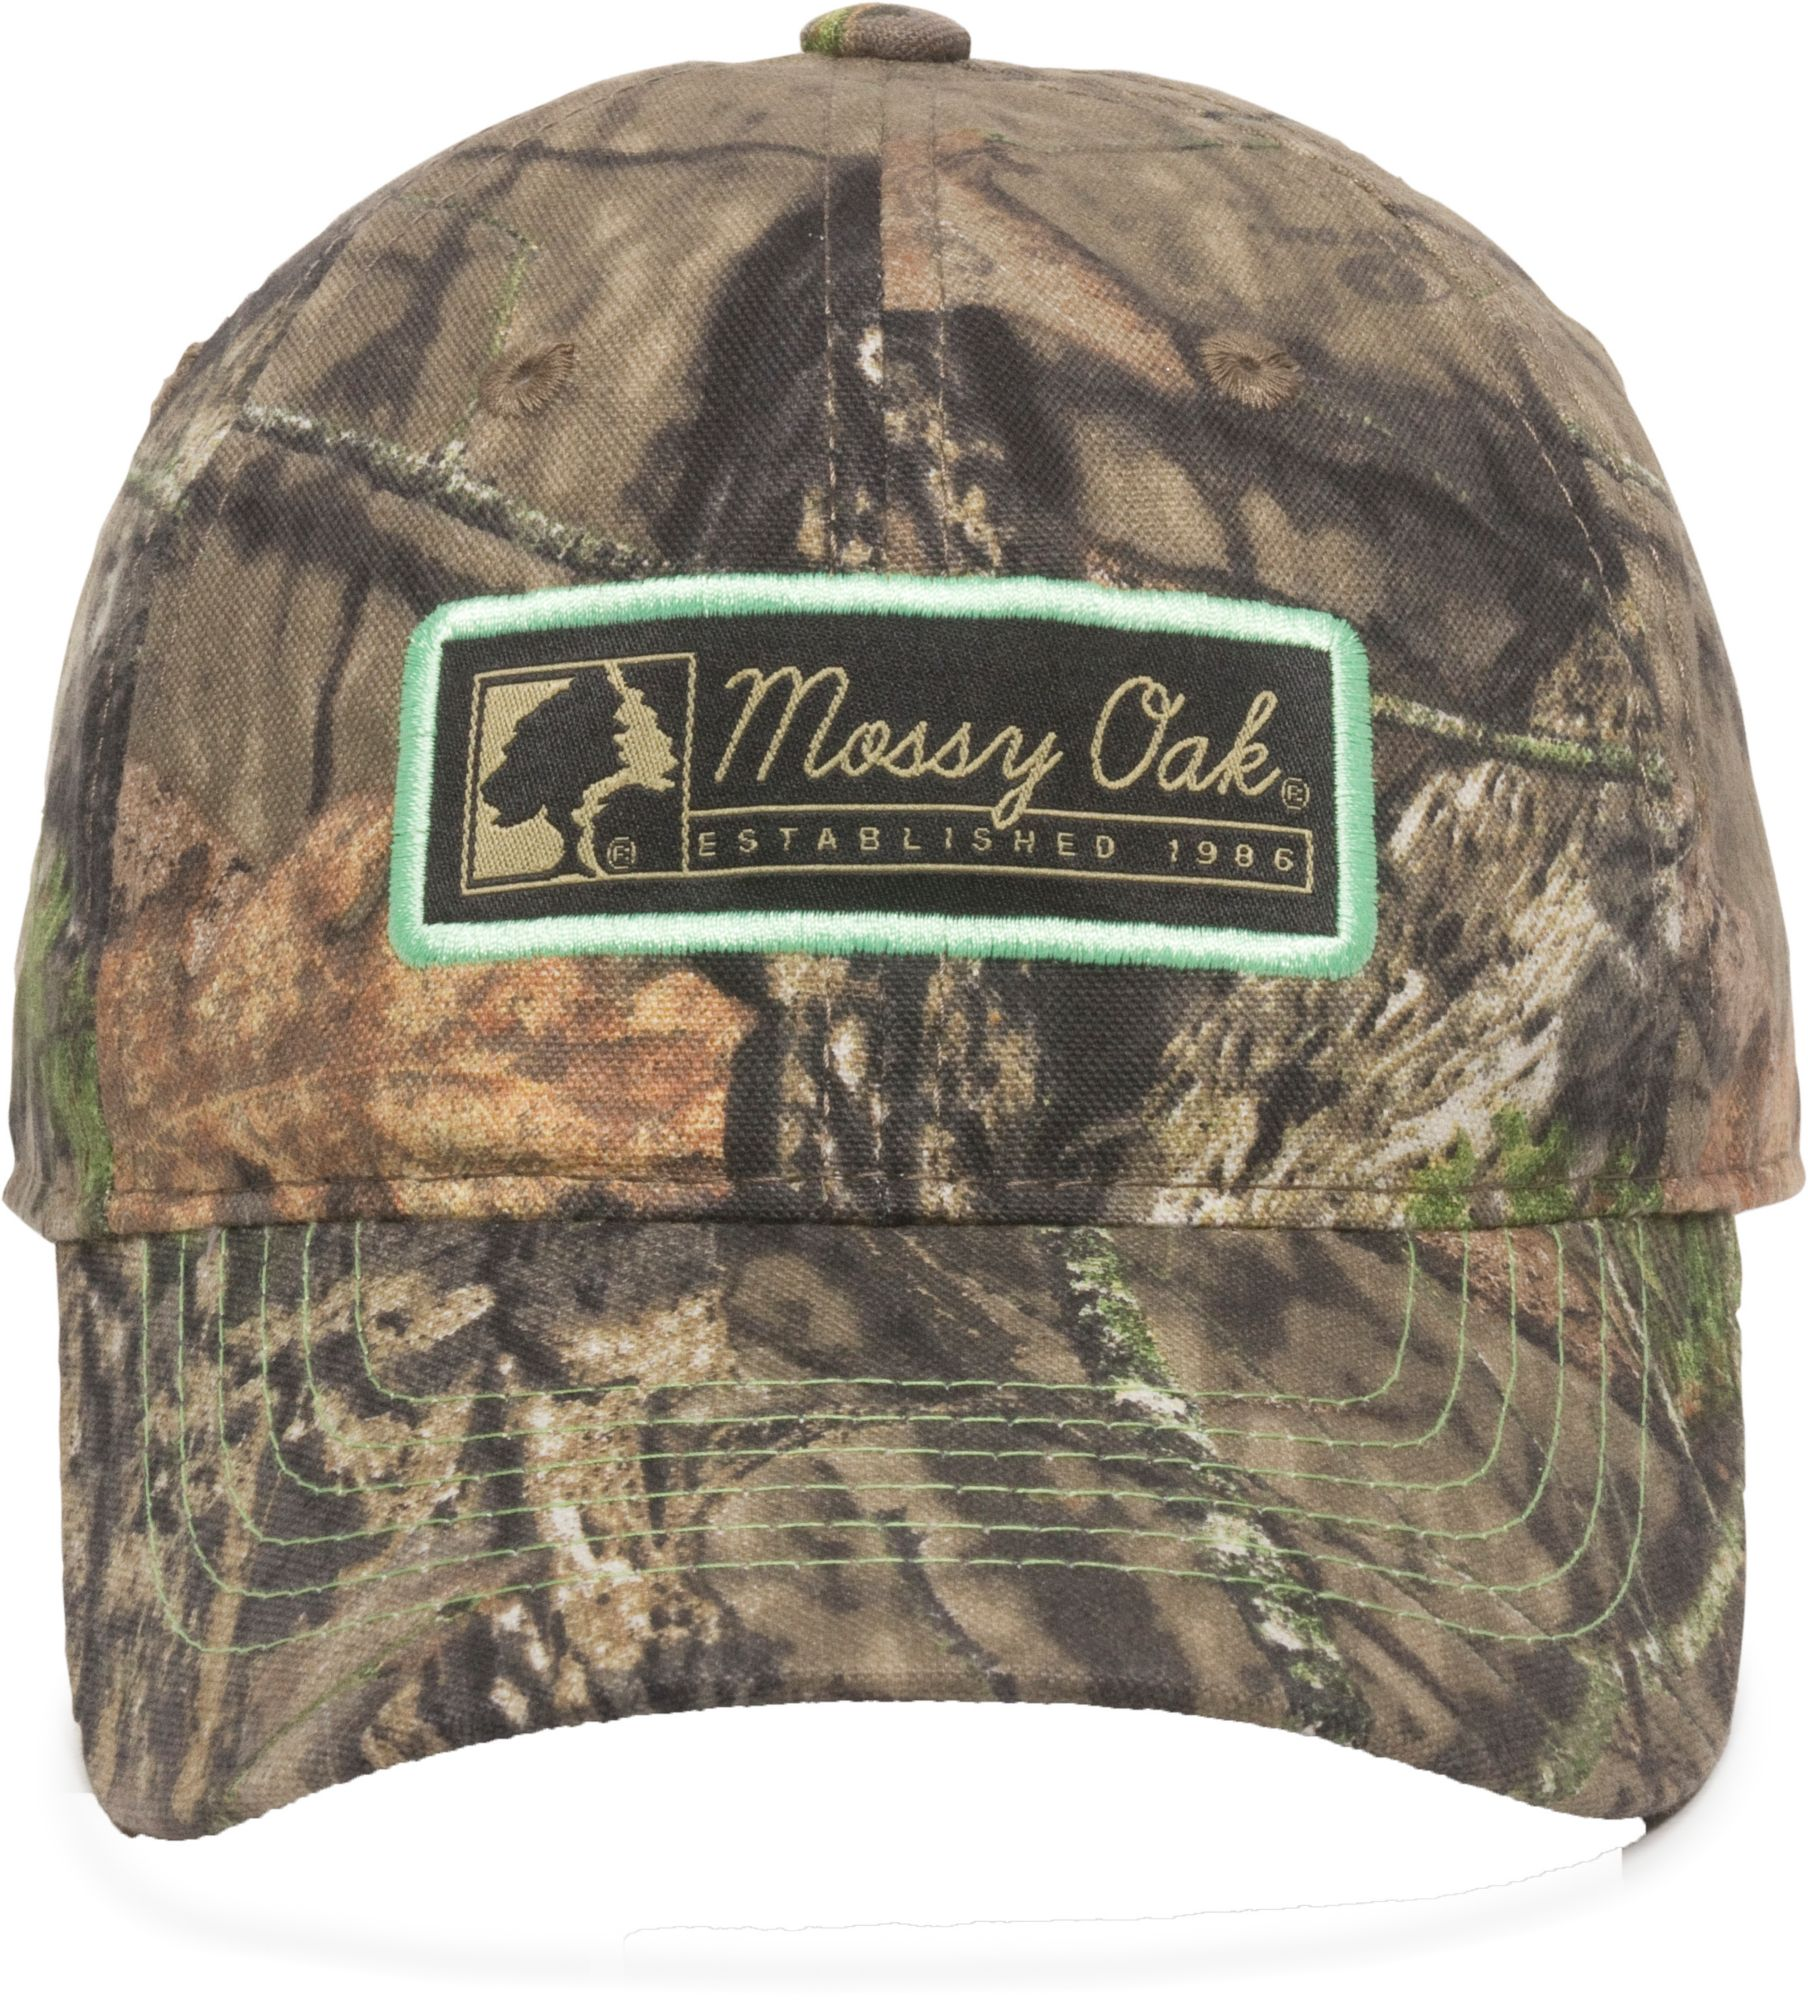 Outdoor Cap Co Women's Mossy Oak Mint Patch Hat, Green